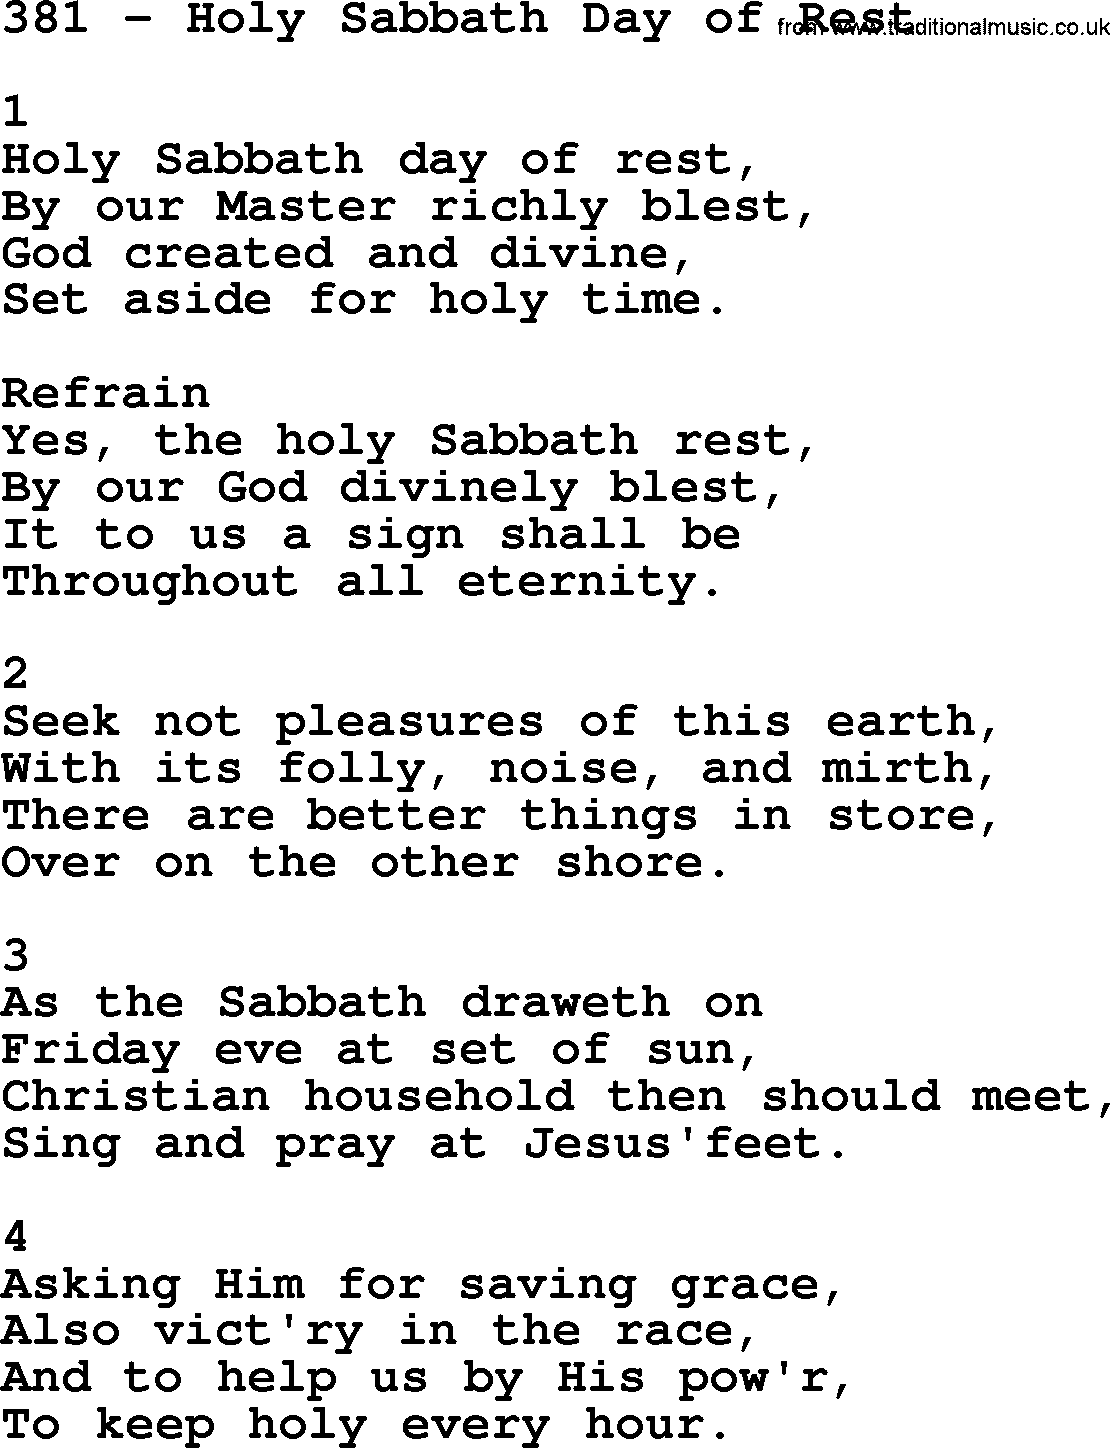 Complete Adventis Hymnal, title: 381-Holy Sabbath Day Of Rest, with lyrics - Sabbath Day PNG